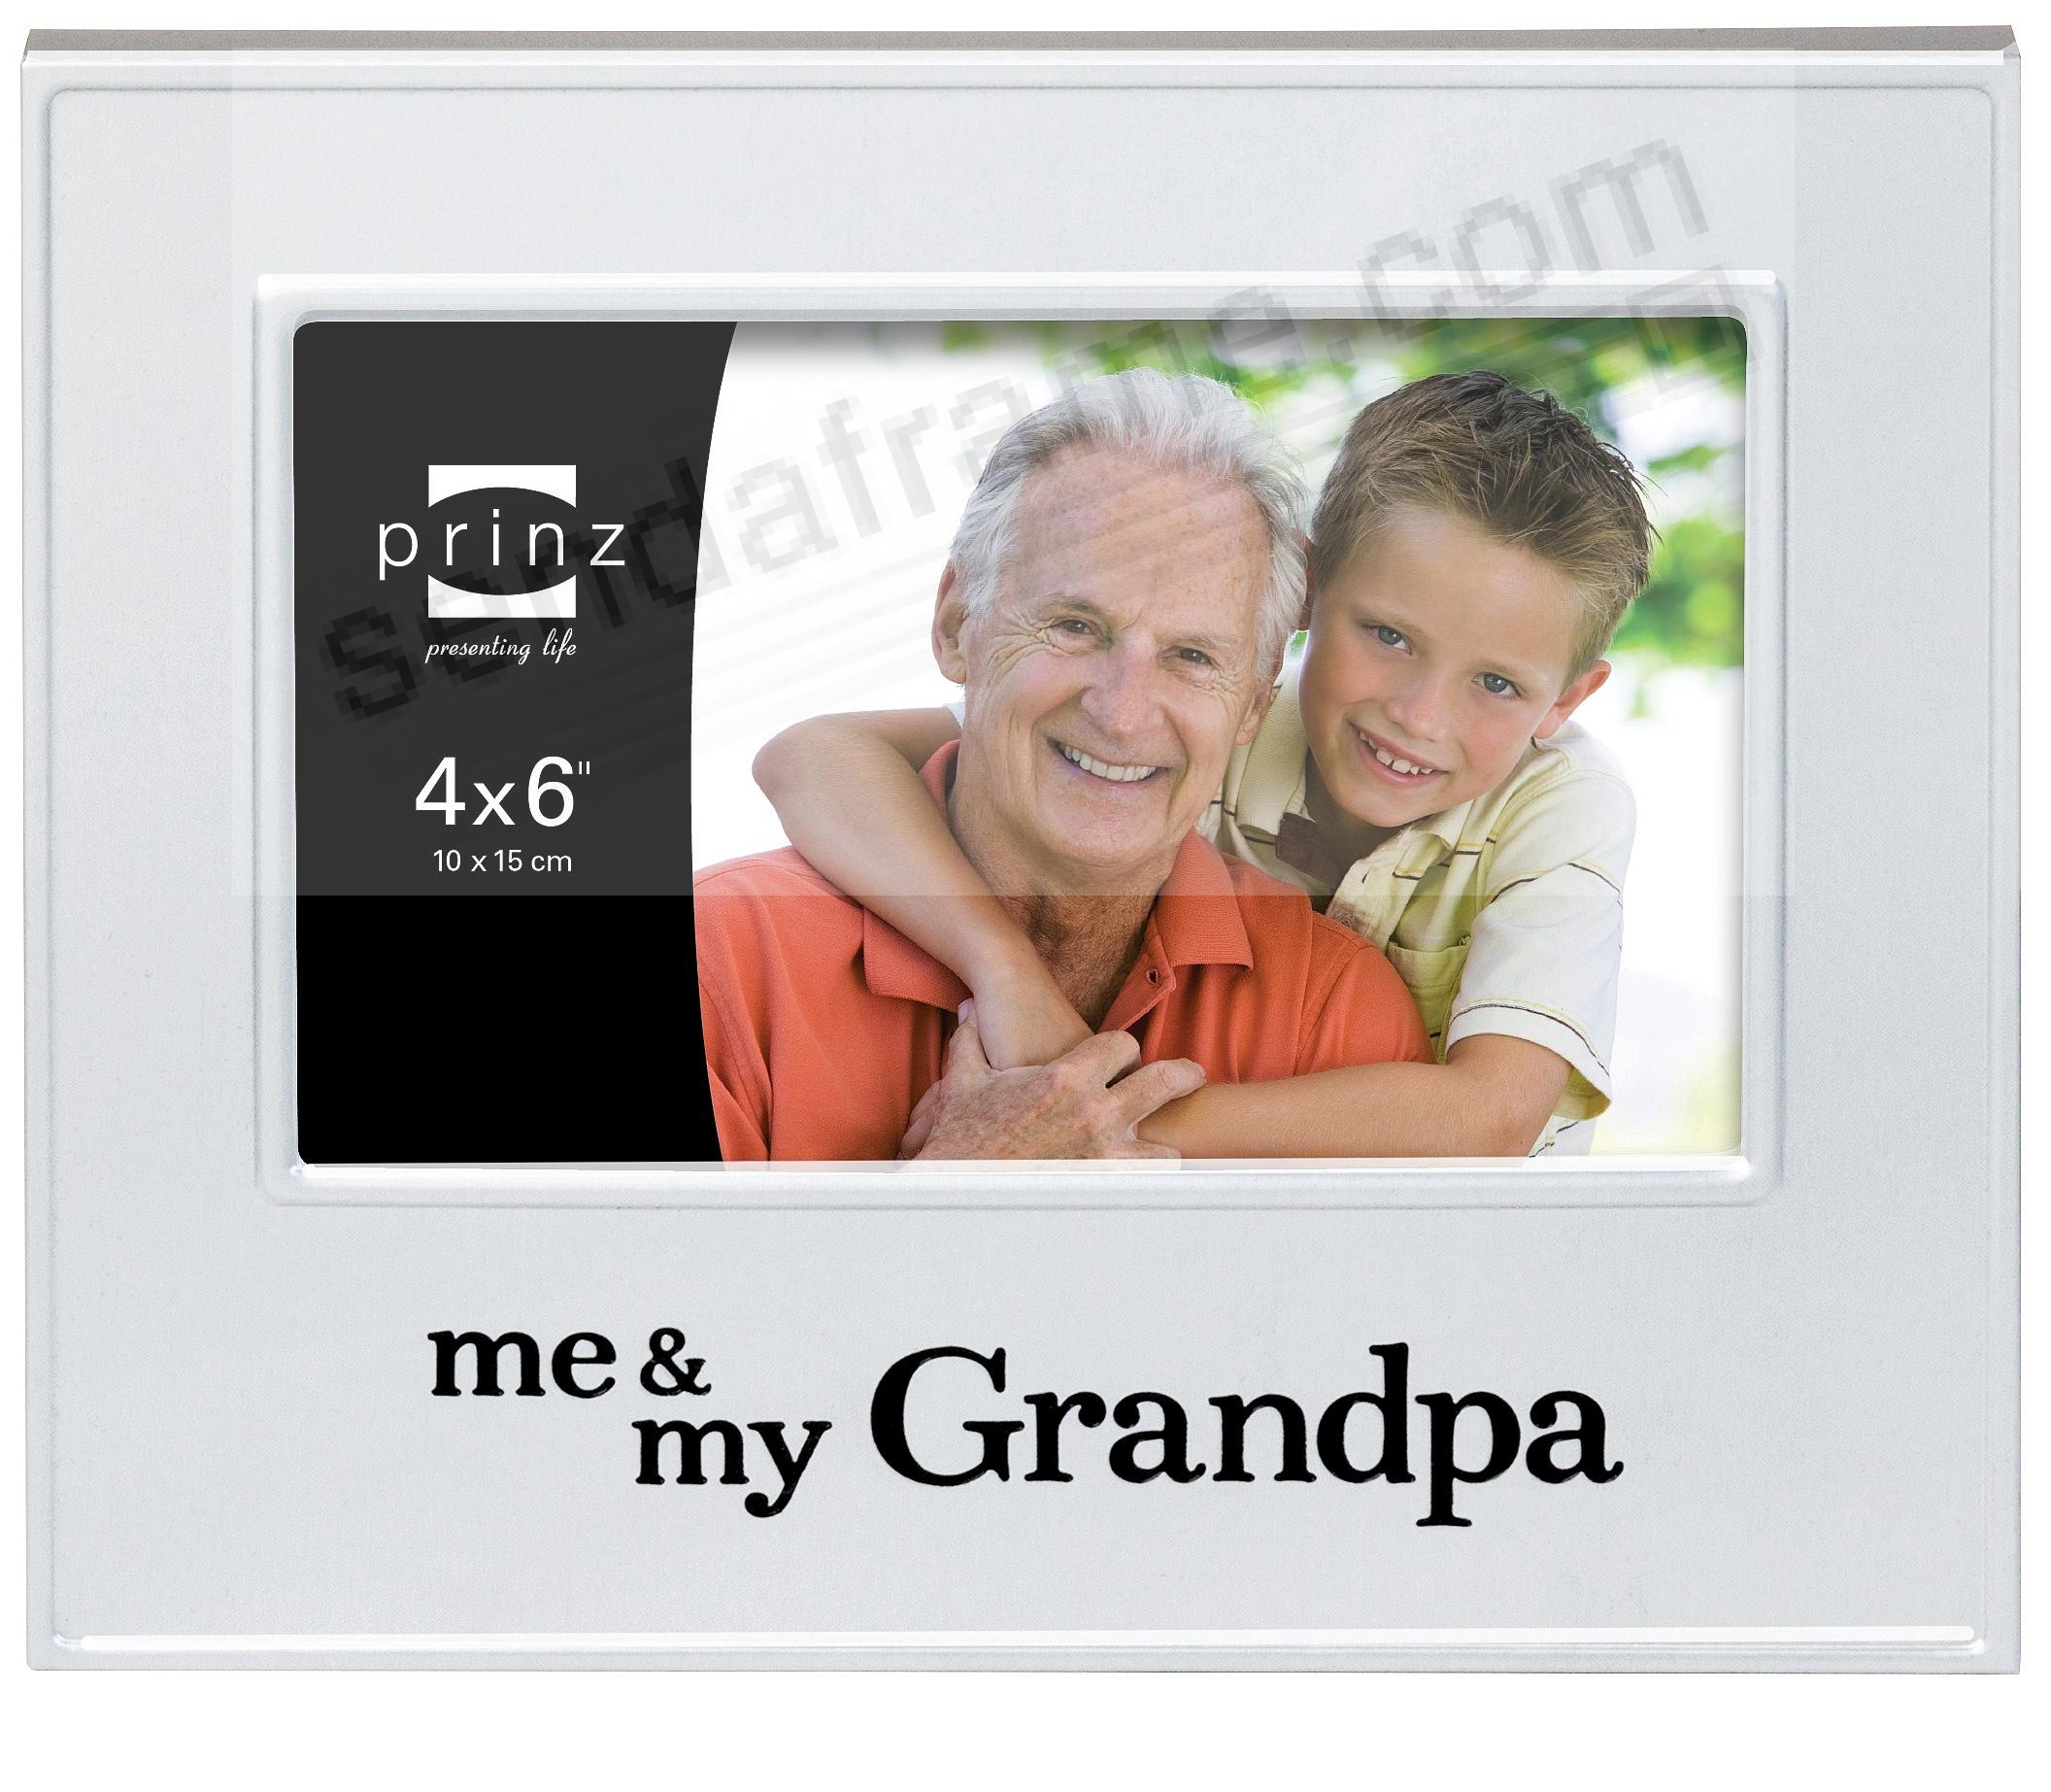 ME & MY GRANDPA Brushed Silver 6x4 frame by Prinz® - Picture Frames ...